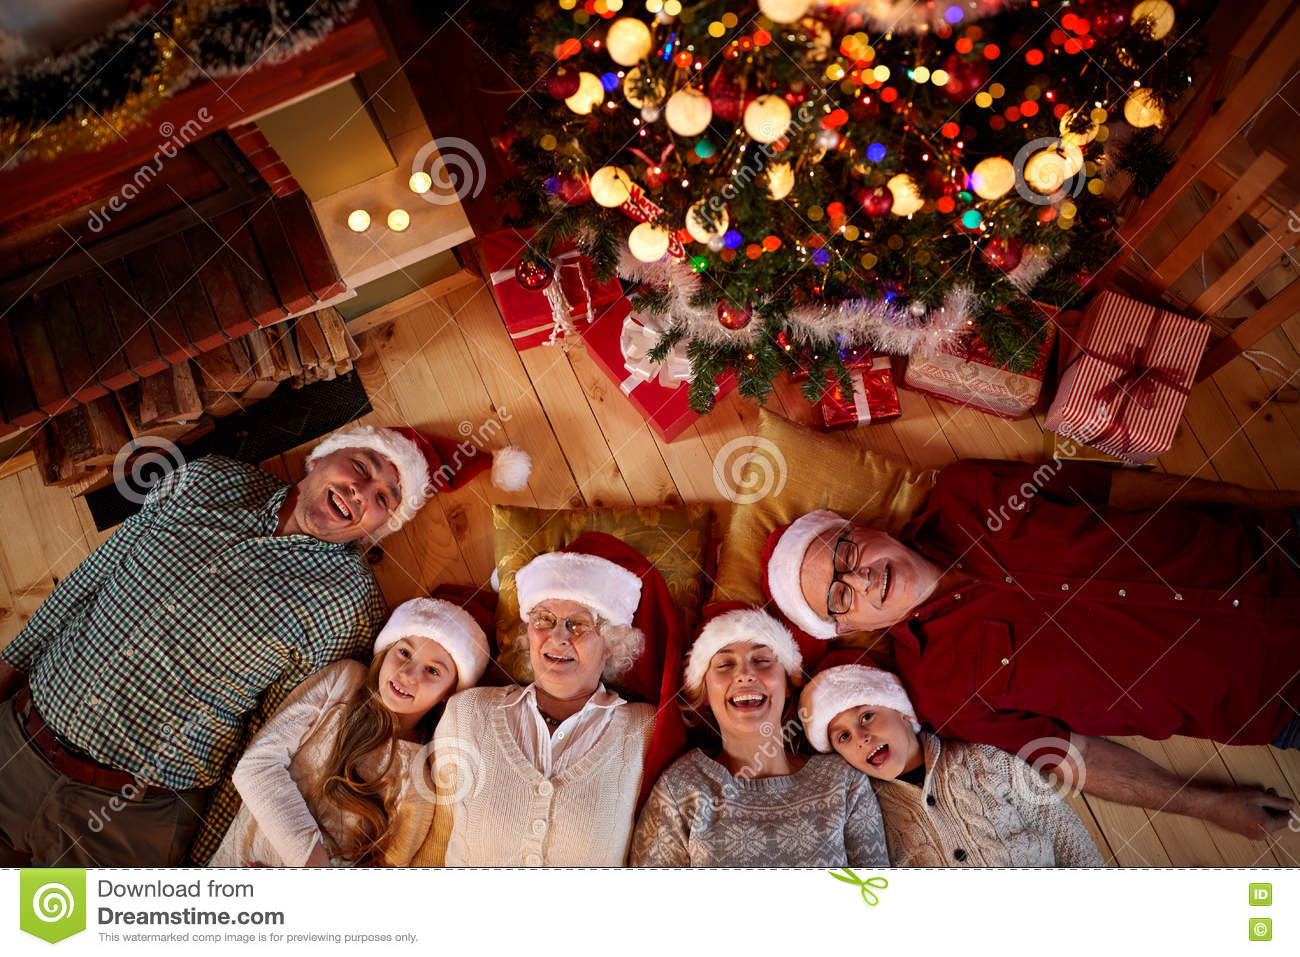 Christmas time spent with family